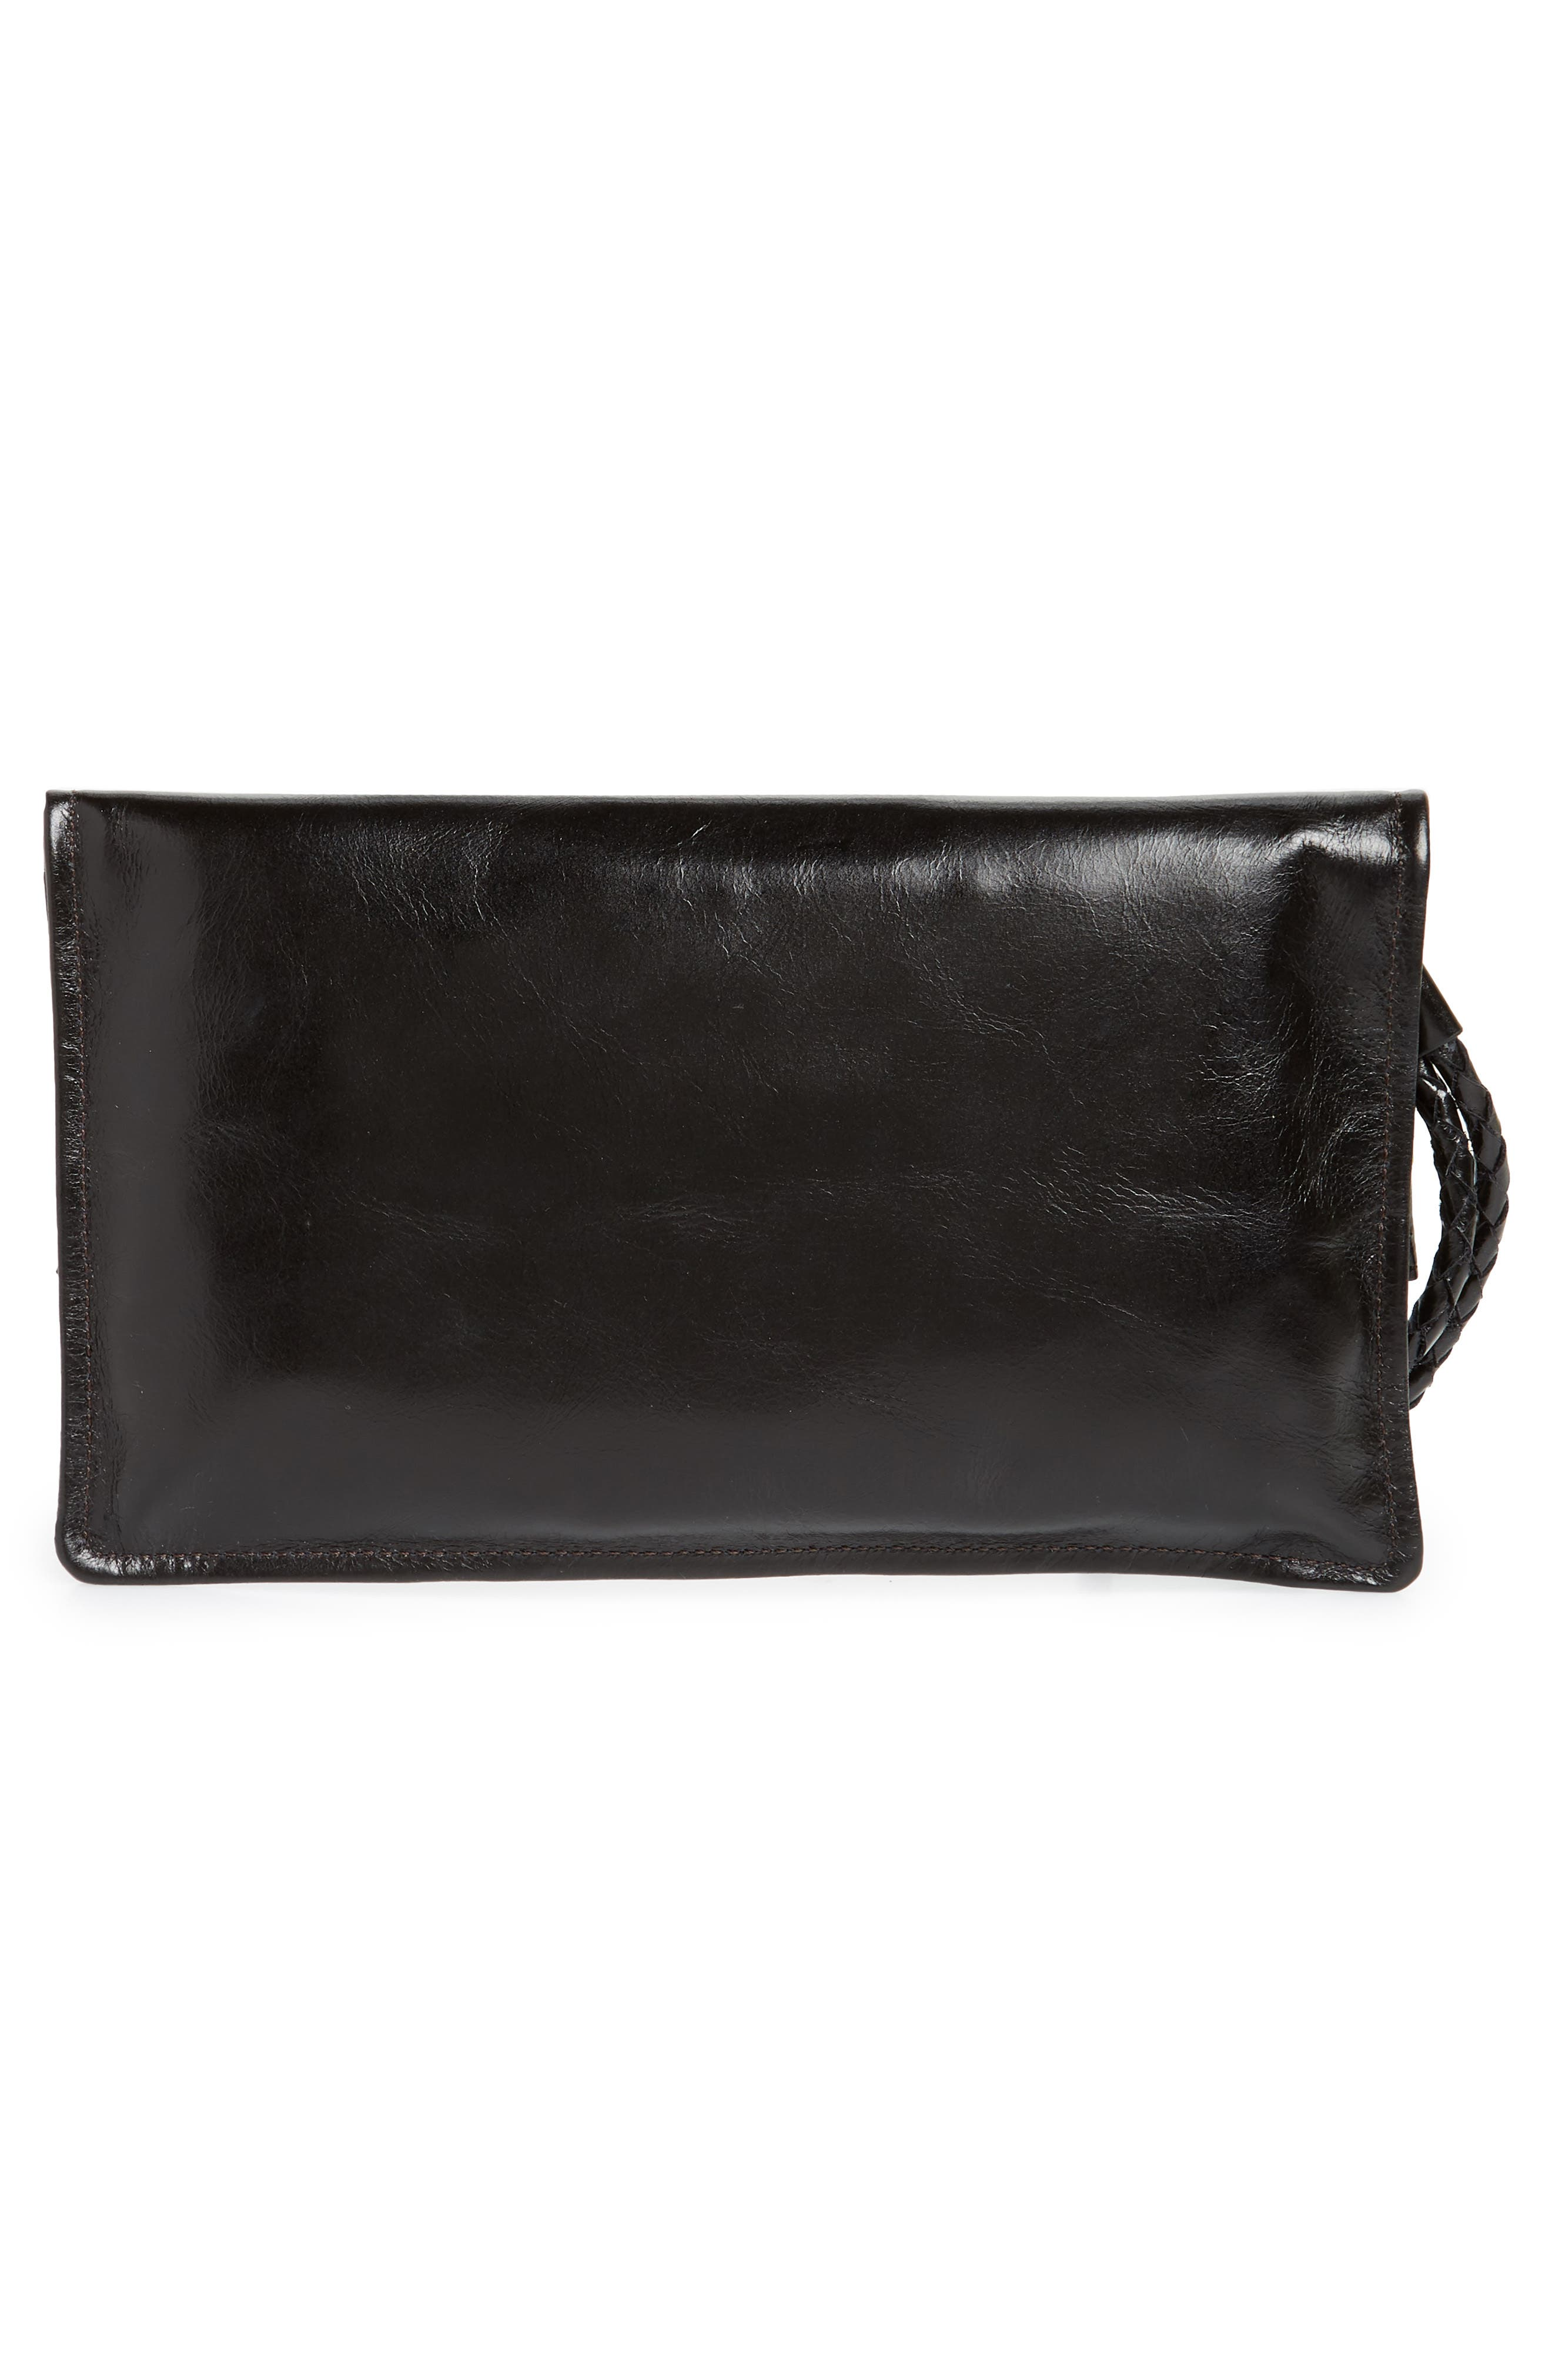 Arbor Leather Wristlet Clutch,                             Alternate thumbnail 3, color,                             001